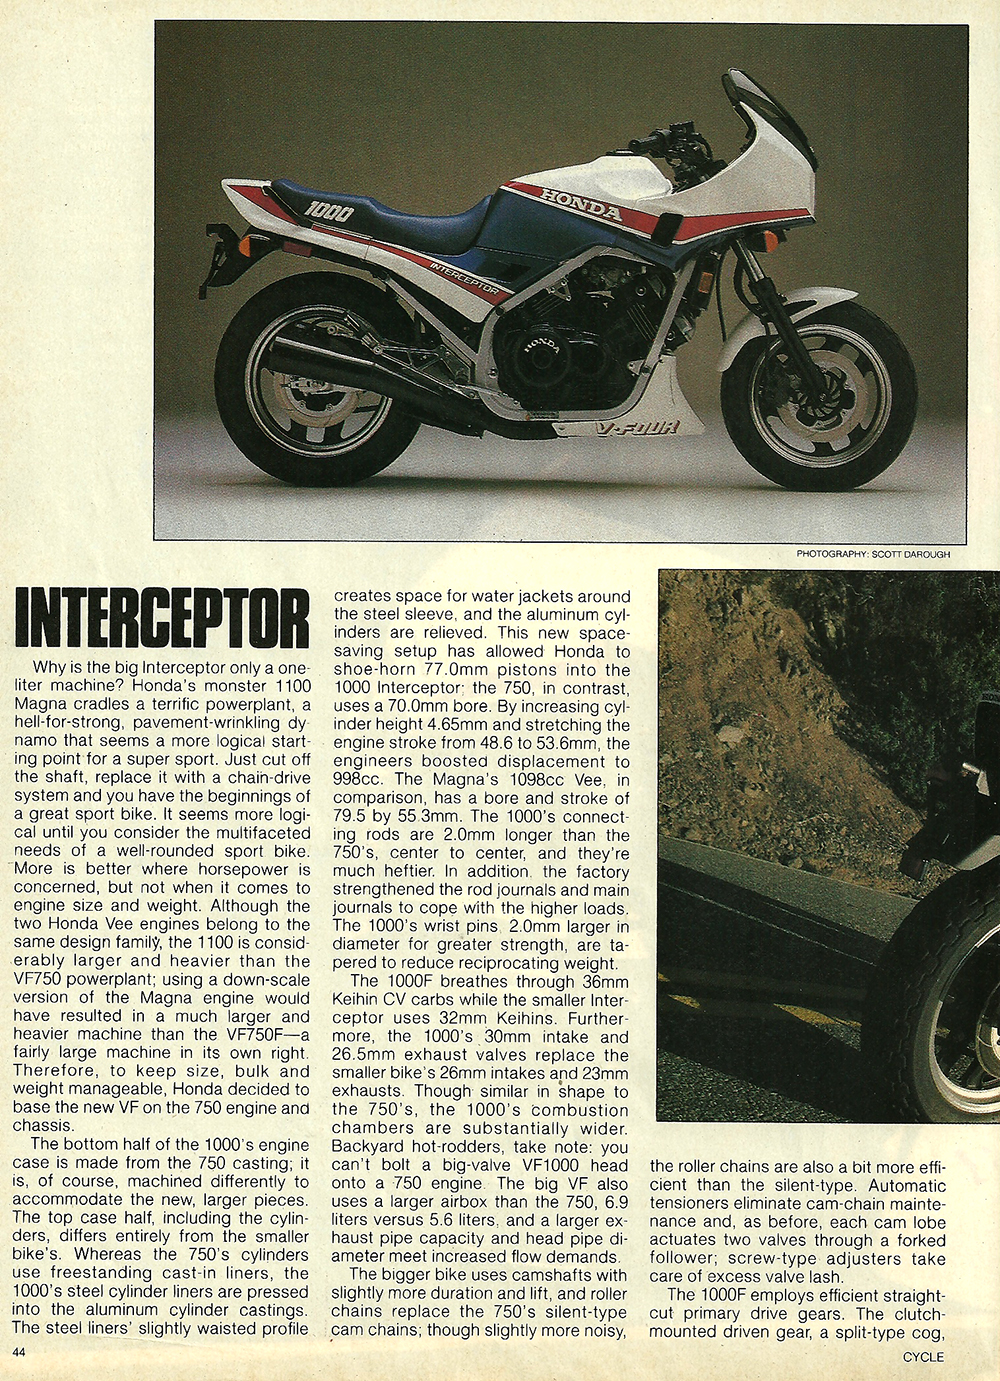 1984 Honda VF1000 Interceptor road test 3.jpg